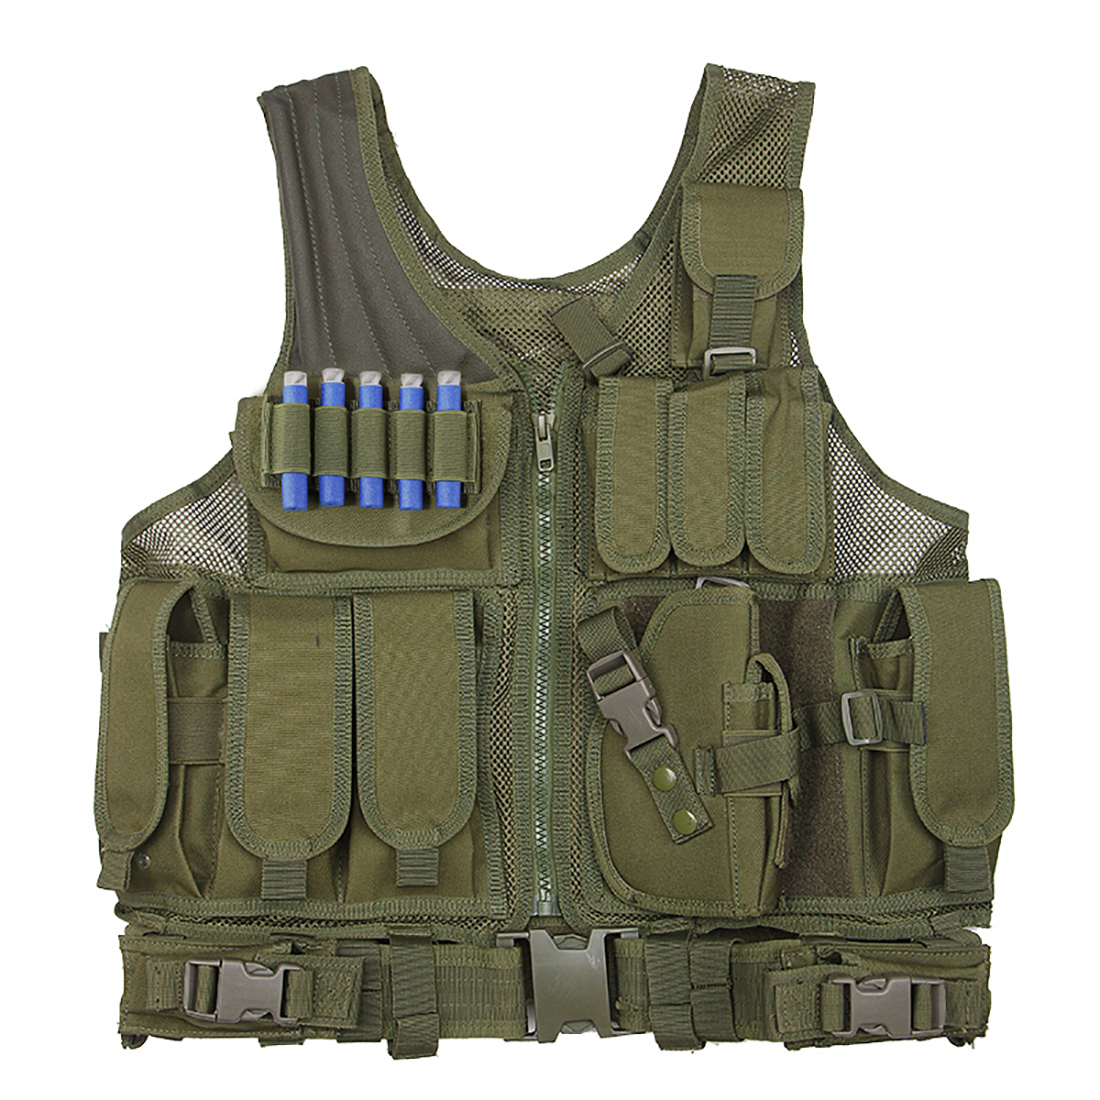 Surwish Hunting Tactical Kits Molle Multi-function Military Shooting Protective Equipment for Nerf CS Outdoor Sports Group Games nfstrike multi function fsbe outdoor tactical stab resistant accessories for nerf cs defense black